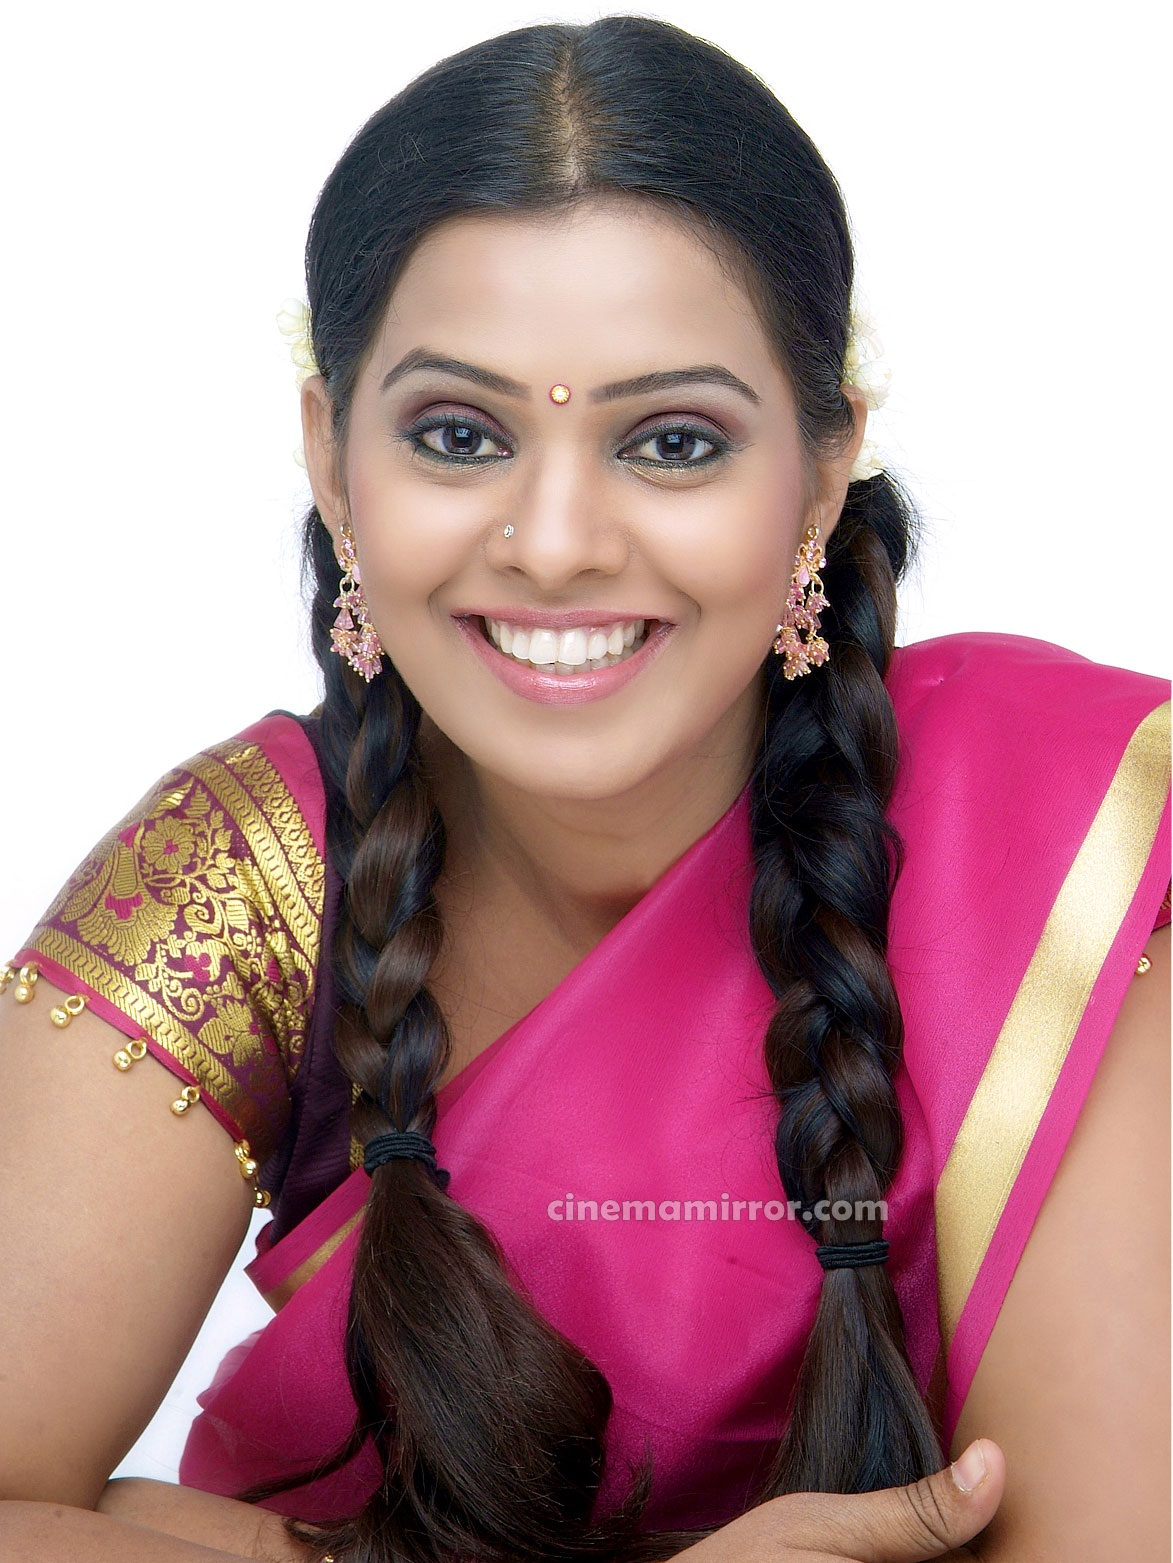 http://2.bp.blogspot.com/-ekiuu34XXlk/Tafwn6TNPKI/AAAAAAAAF-8/uWZdc_ZZ8UY/s1600/Tamil_Actress_Kushi_Half_Saree_Photo_Shoot_Gallery_02.jpg